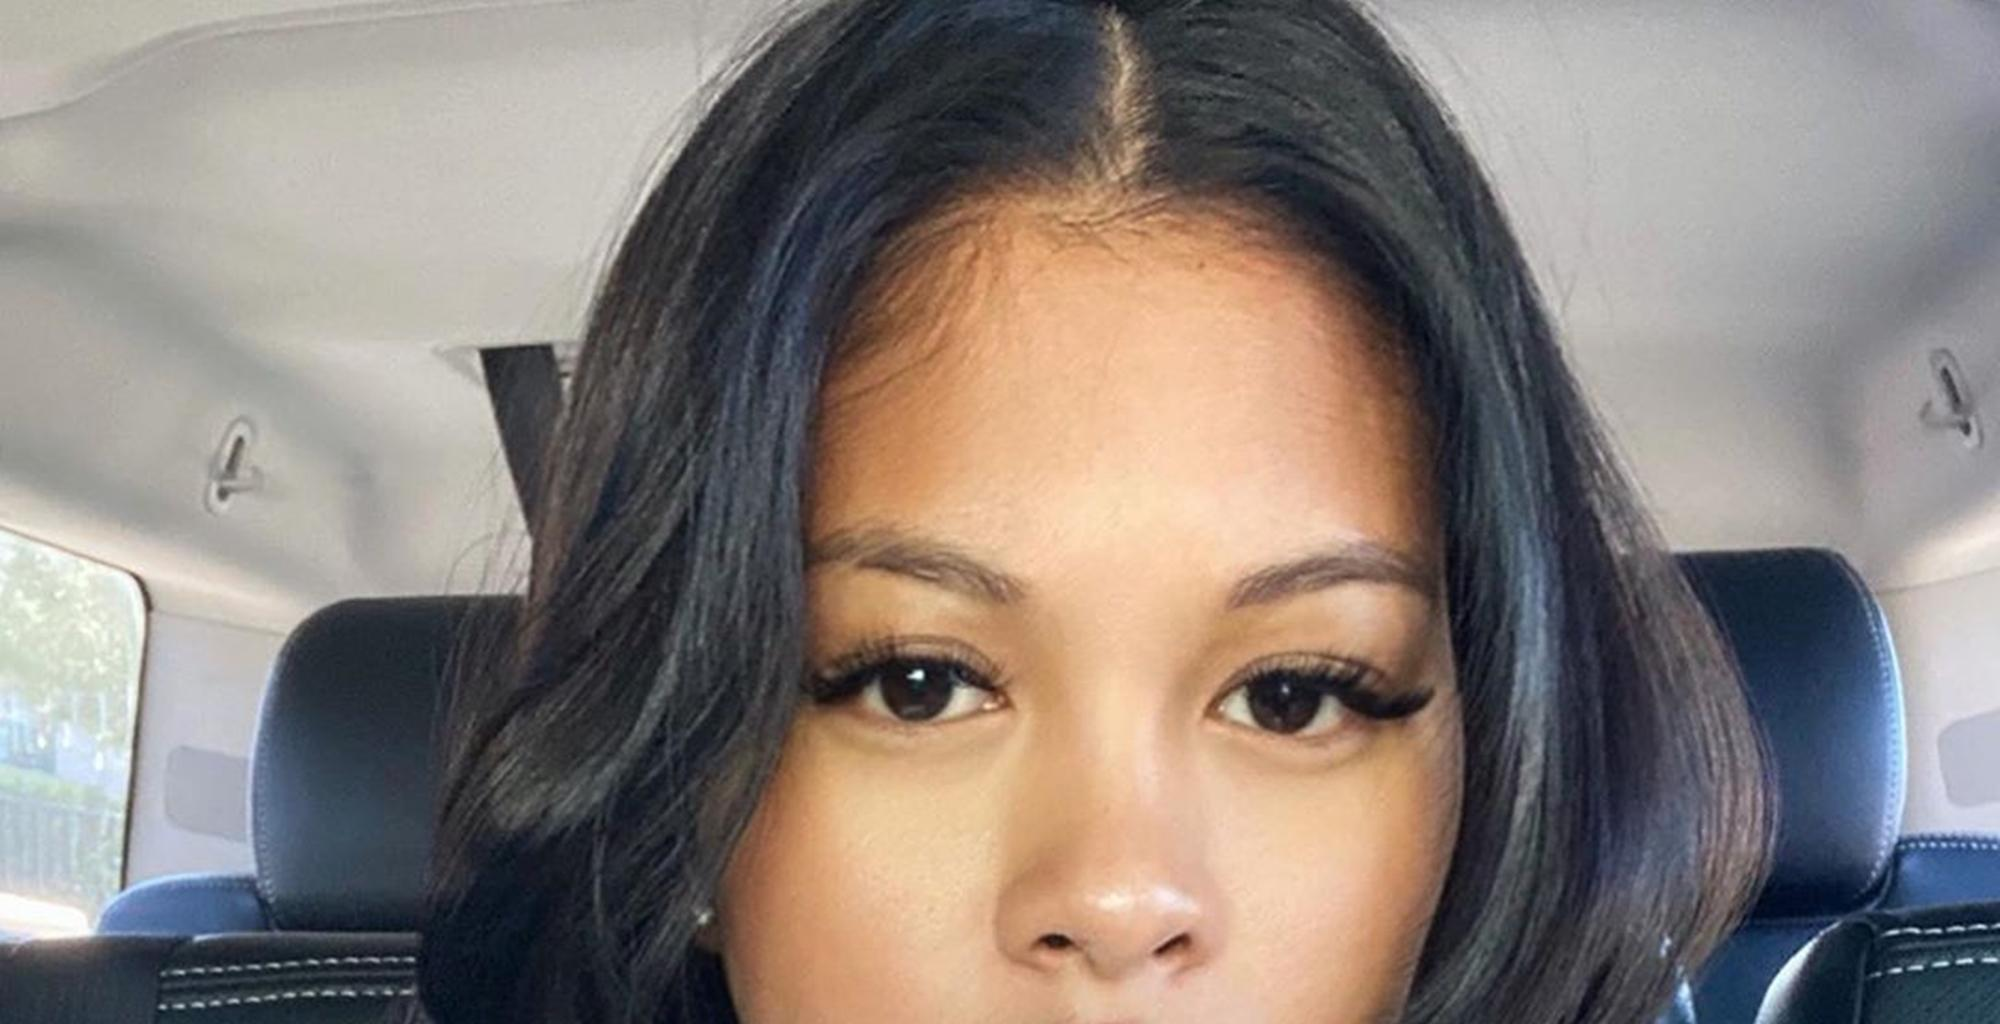 Chris Brown's Baby Mama, Ammika Harris, Flaunts Angel Wings Tattoos In Bathing Suit Photos And Causes Drama Because She Is Giving Aaliyah Vibes